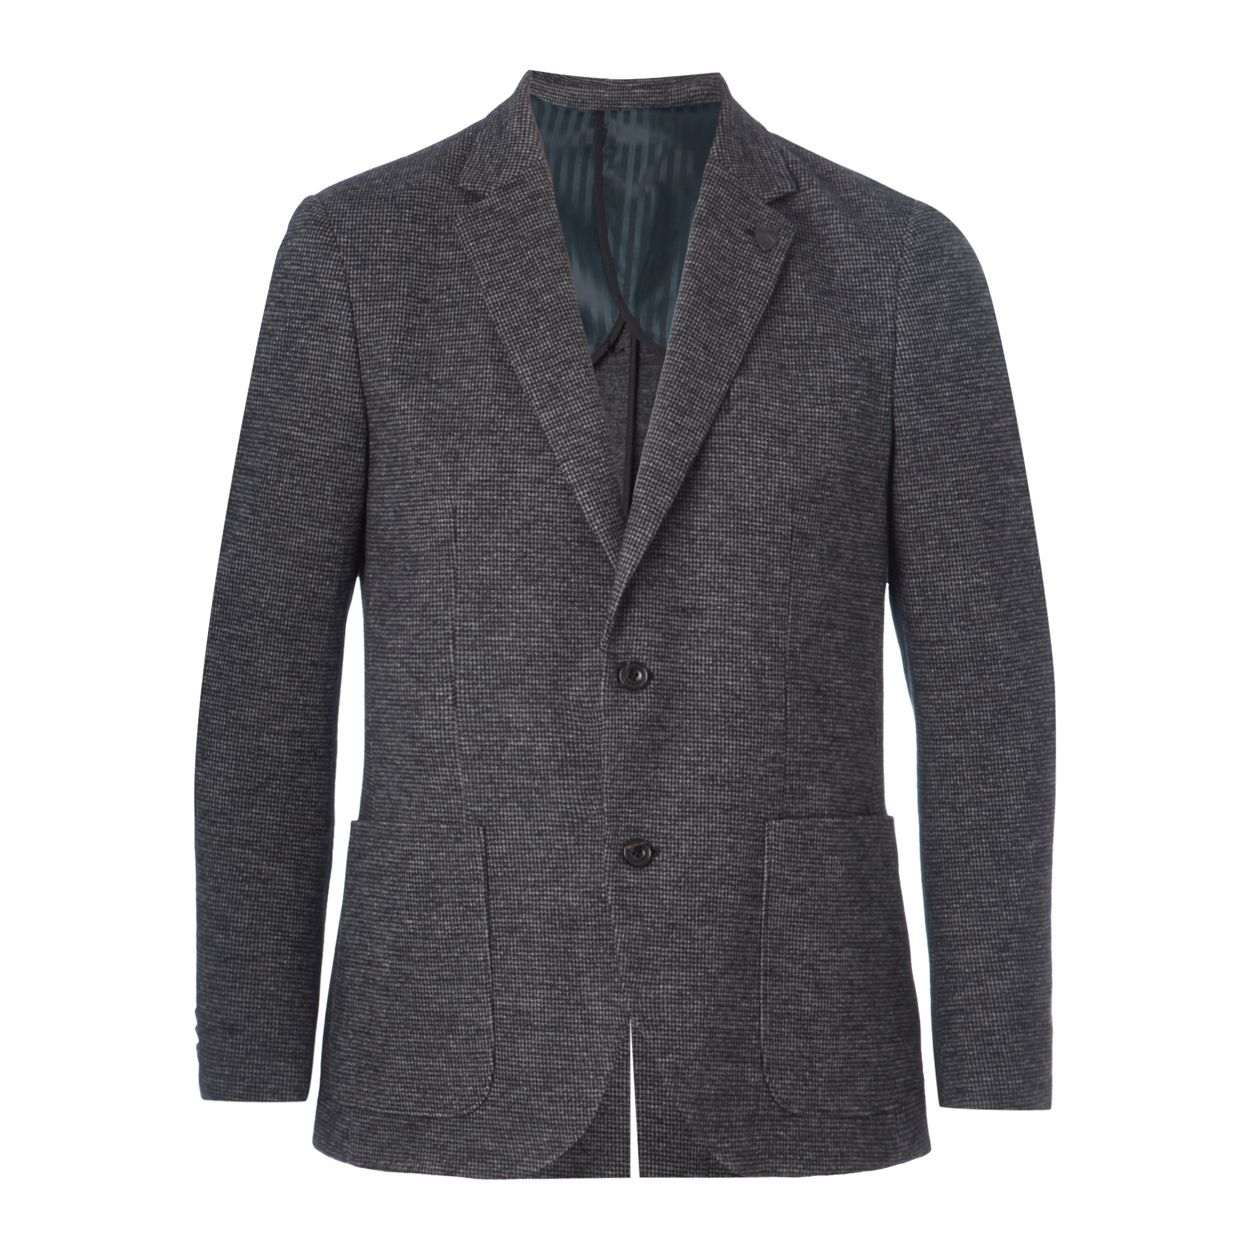 Hammond & Co. by Patrick Grant Grey hounds tooth jacket with wool